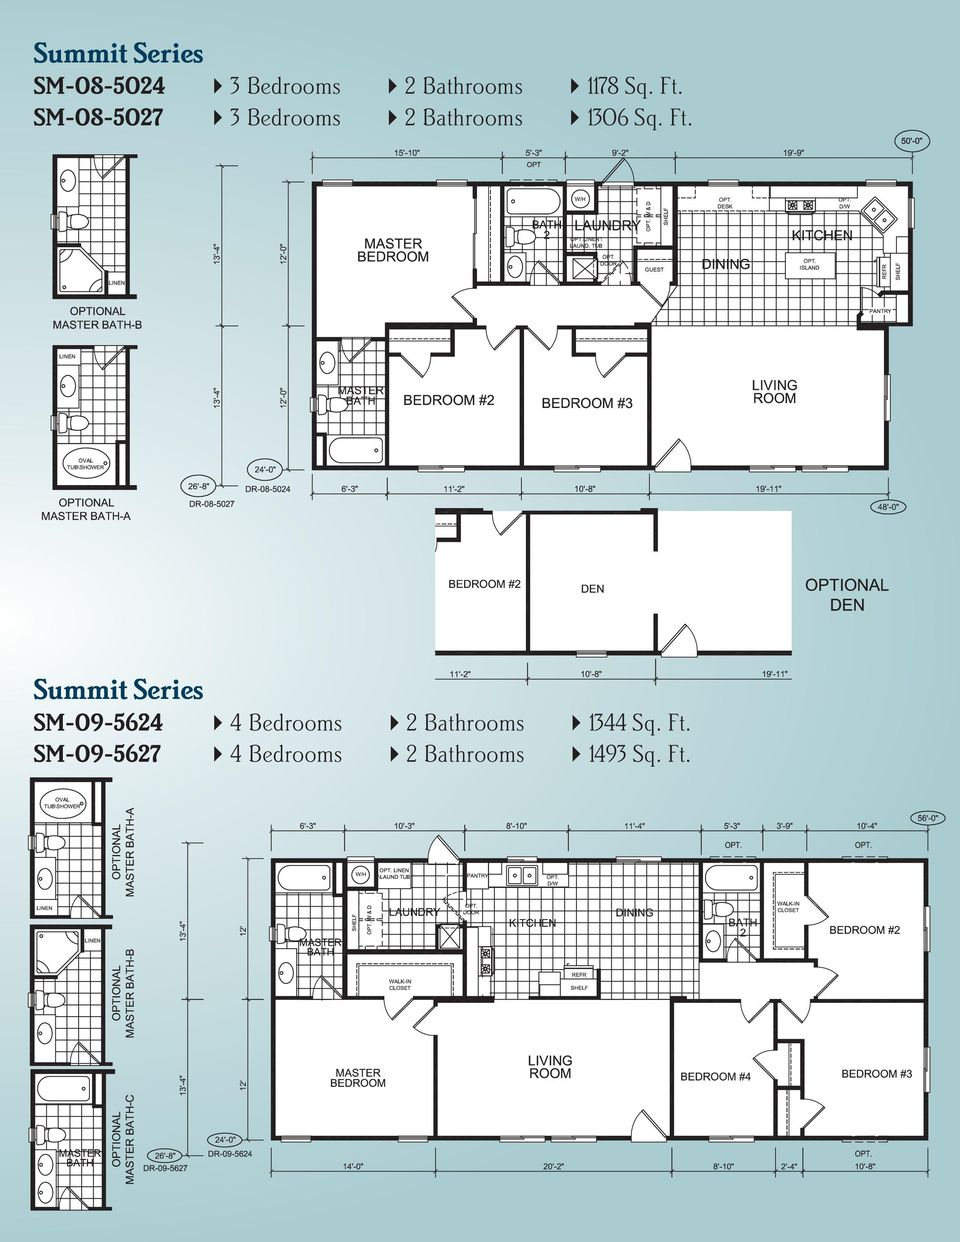 SM-09-5624 44 Bedrooms 42 Bathrooms 41344 Sq. Ft.